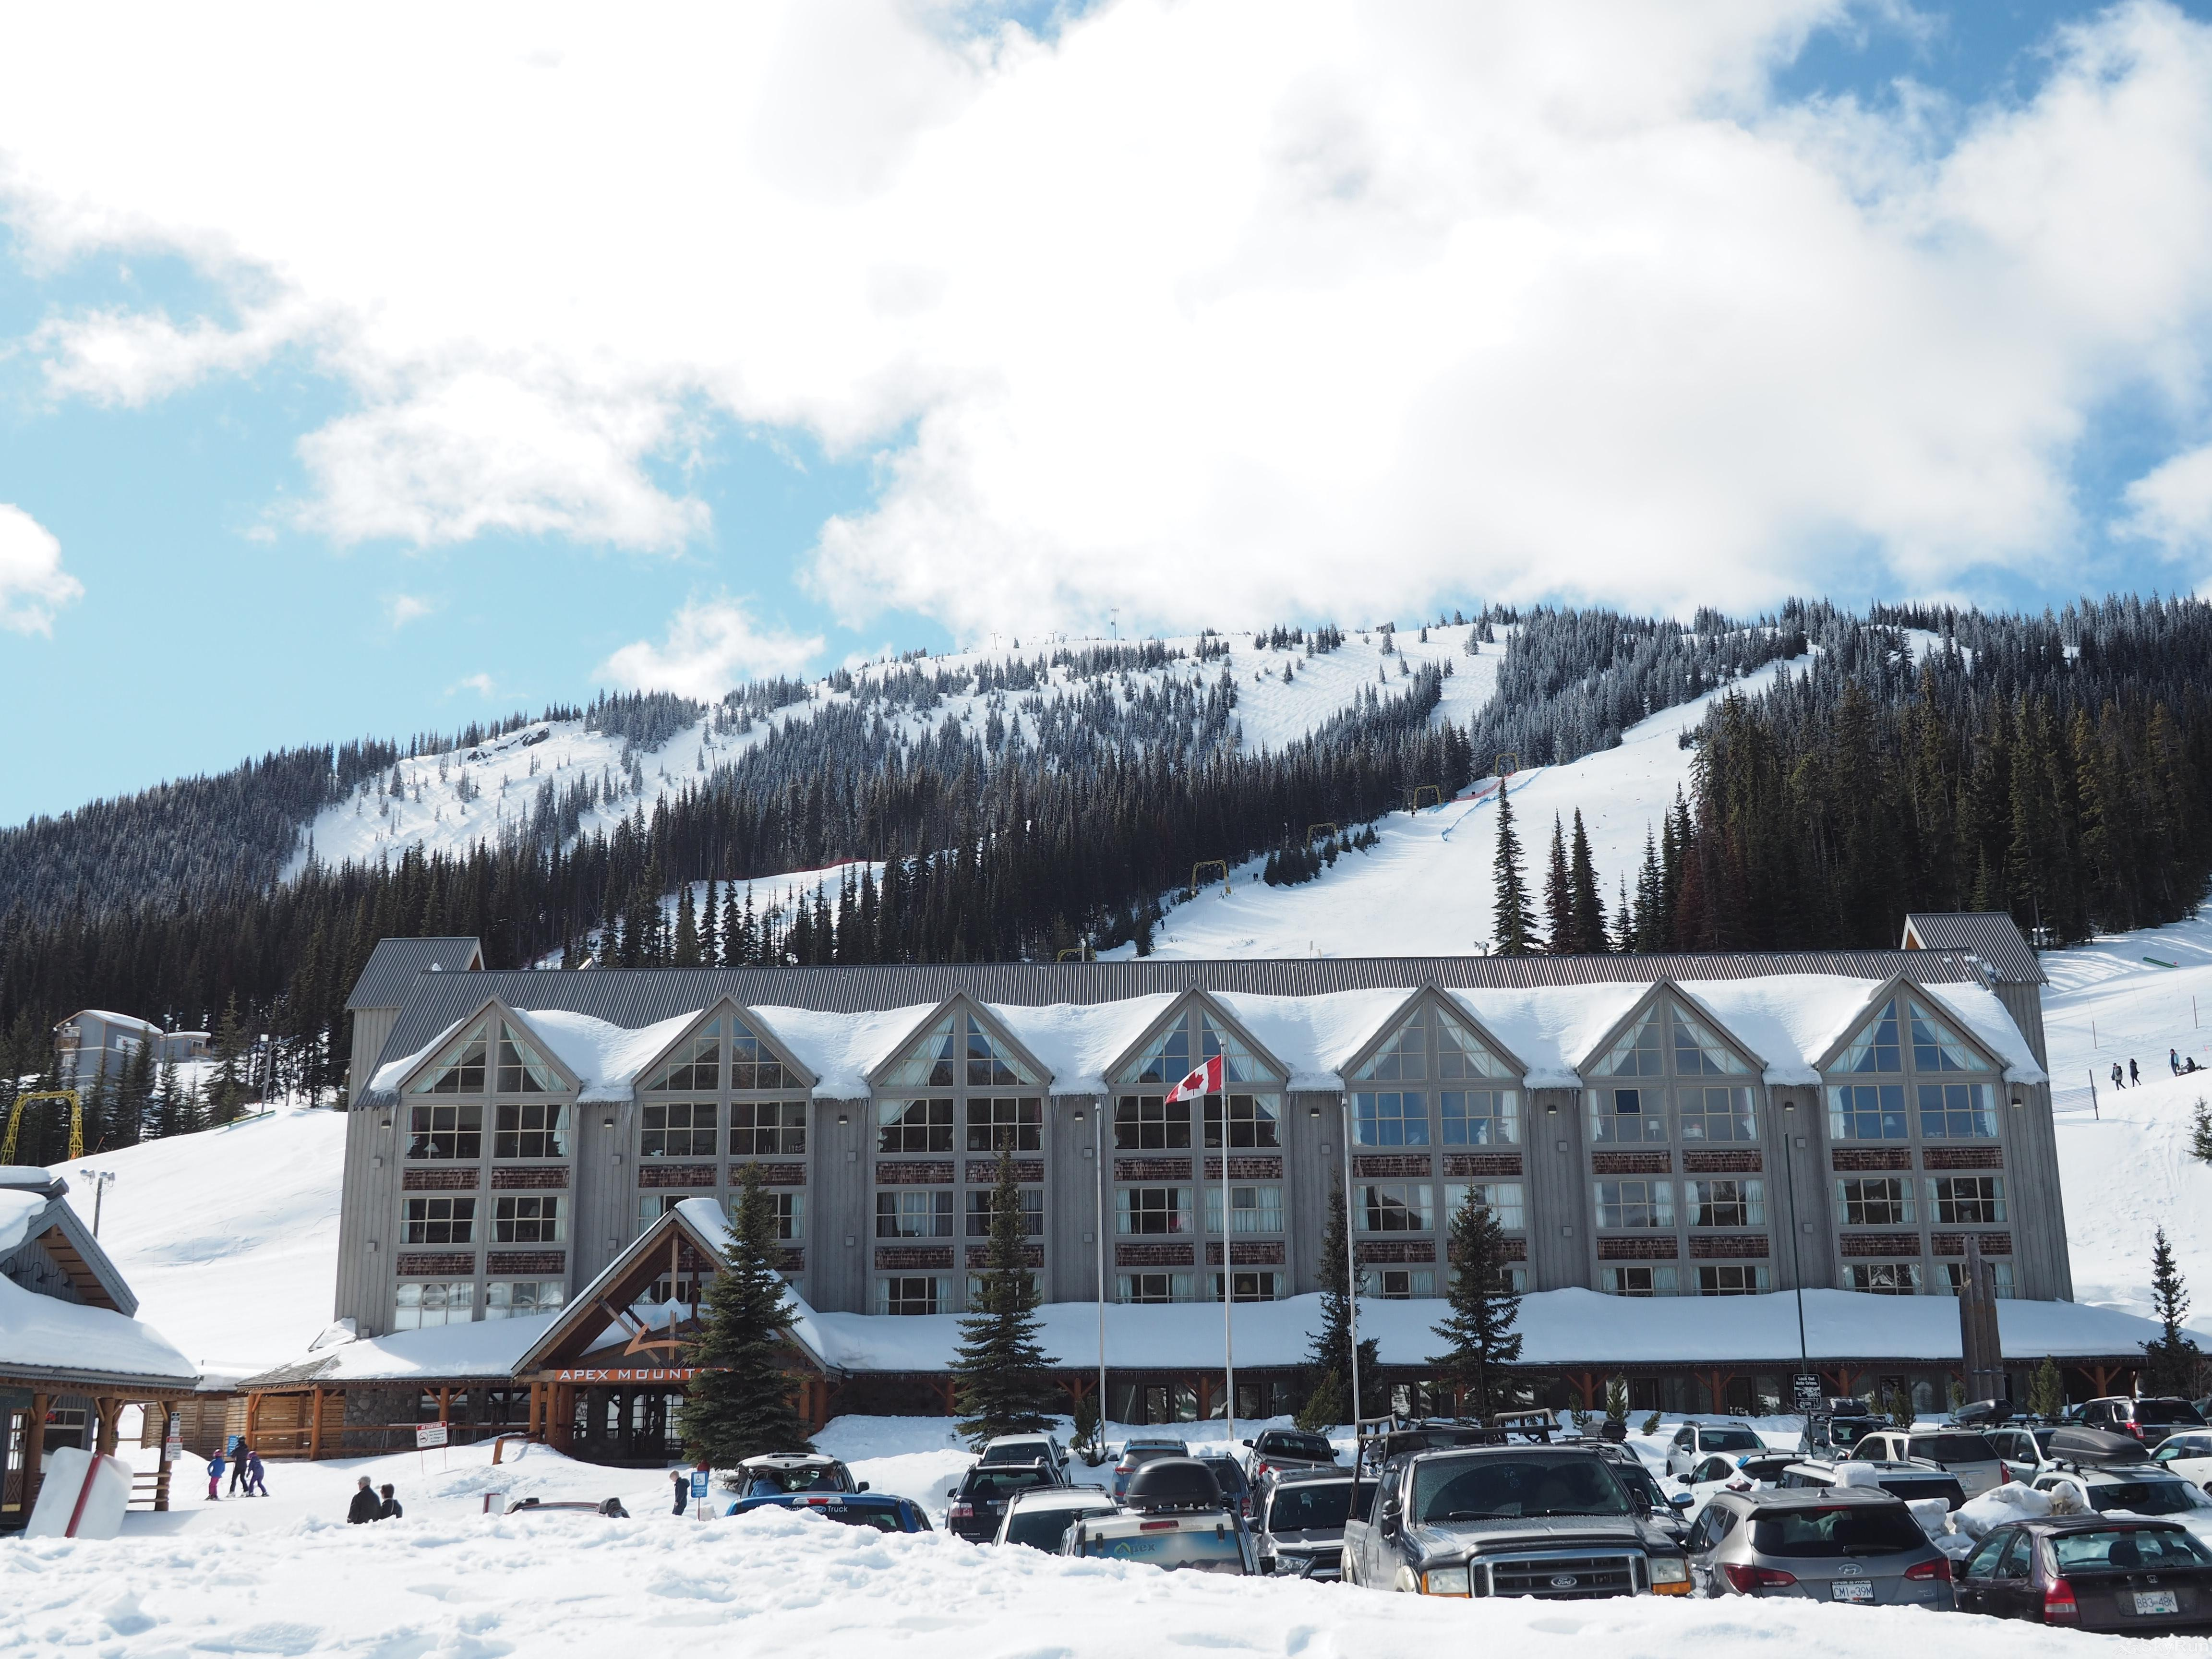 Apex Mountain Inn 2 BDRM Suite 101-102 Unit 101-102 is the ground floor corner unit closest to the hockey rink